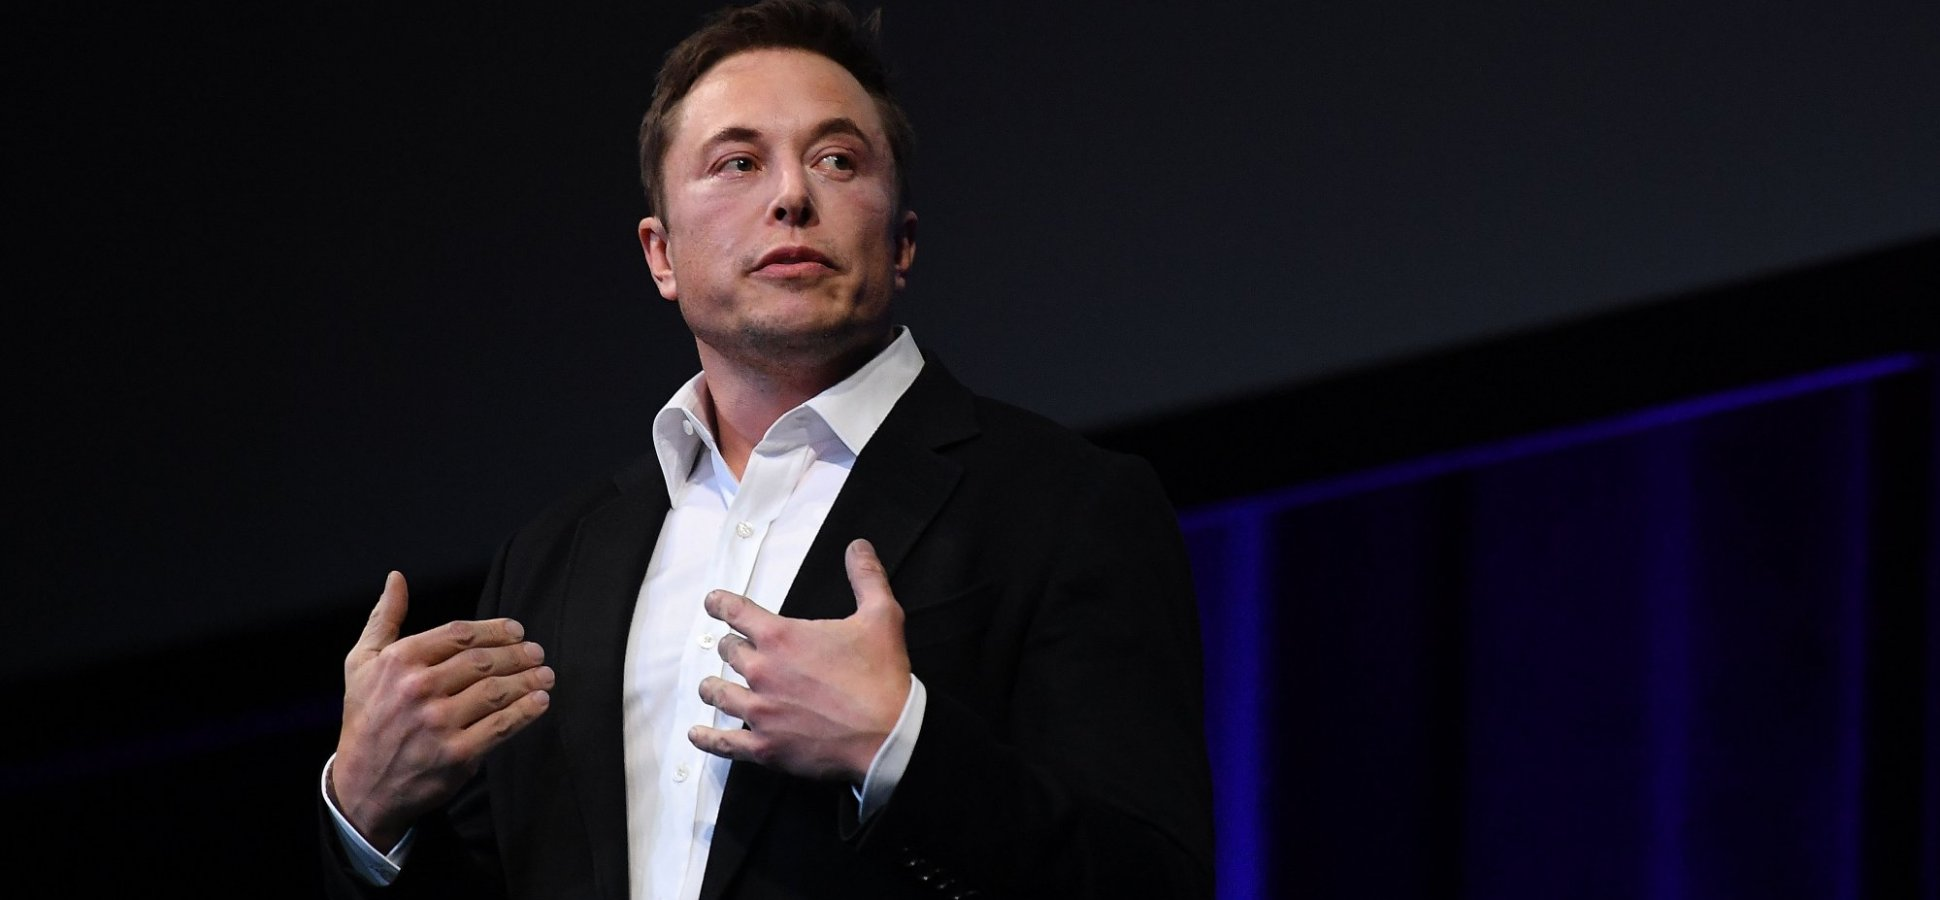 With 1 Christmas Tweet, Elon Musk Gave a Masterful Lesson in Leadership (and Customer Relations)